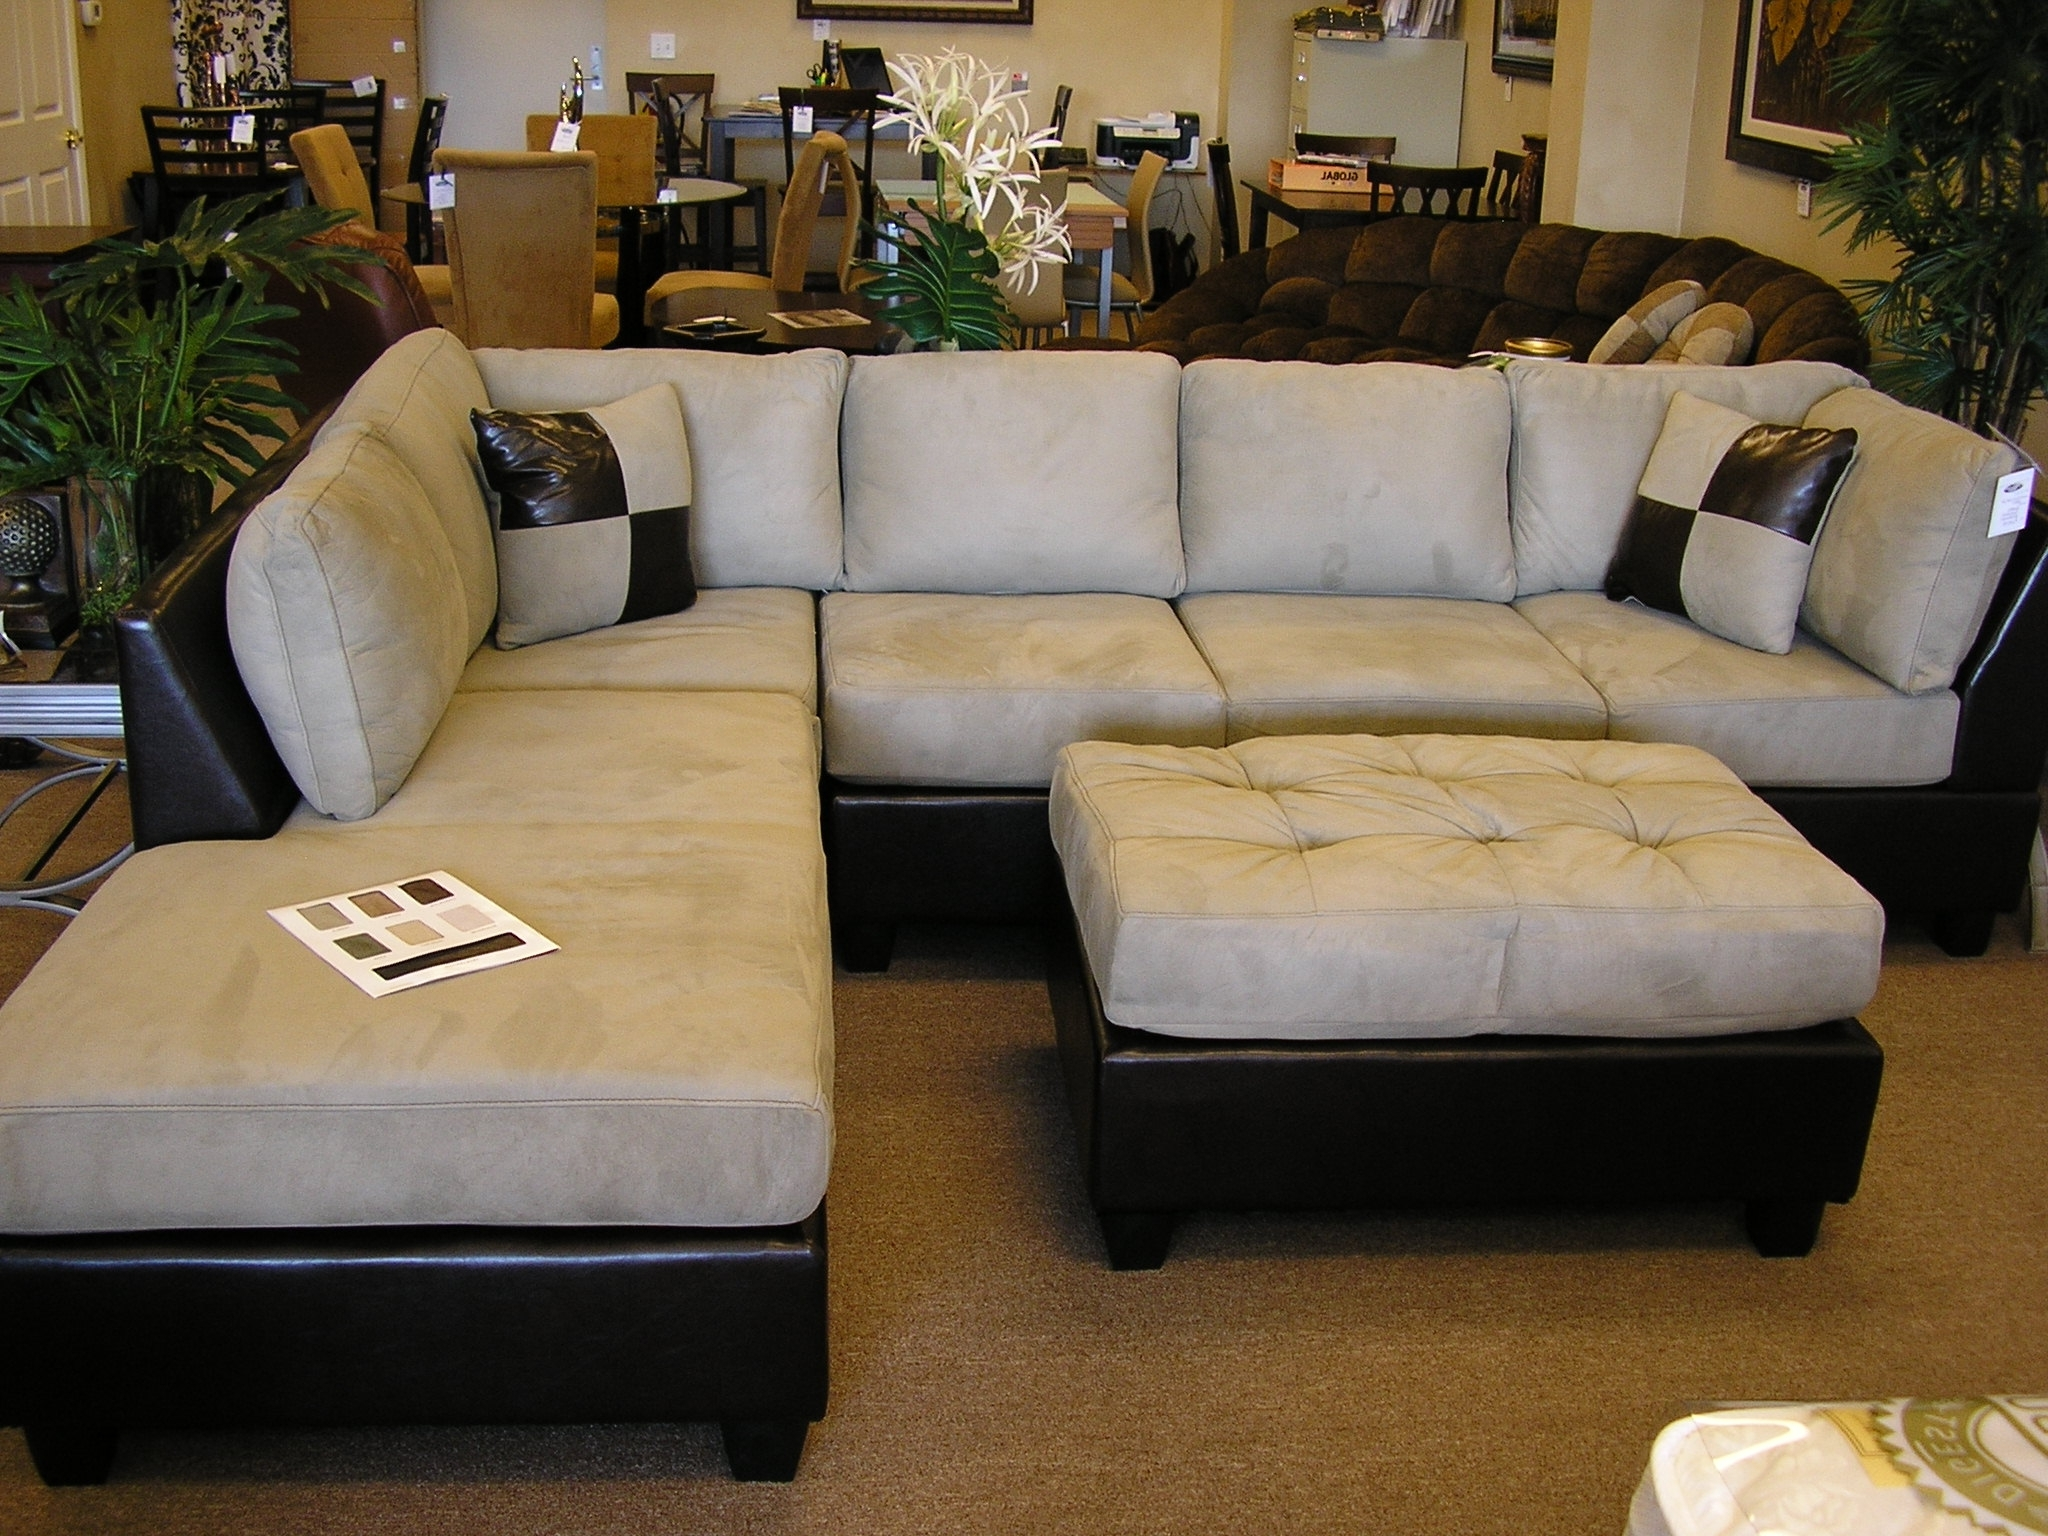 Best And Newest Slipcovers For Sectional Sofas With Chaise Within New Sectional Sofa With Chaise And Ottoman 74 On Stretch (View 15 of 15)